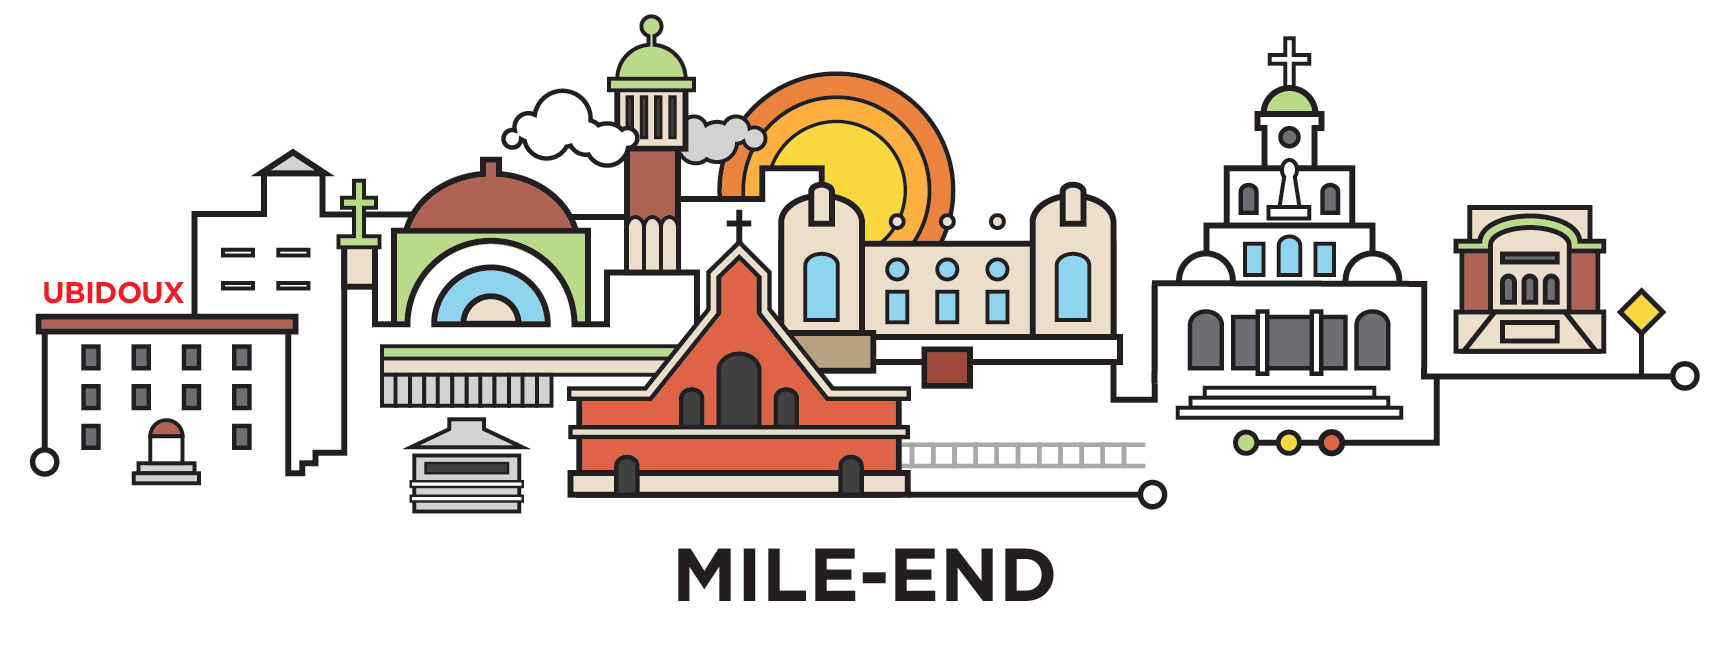 mtl-mile-end-cityline-illustration-by-loogart